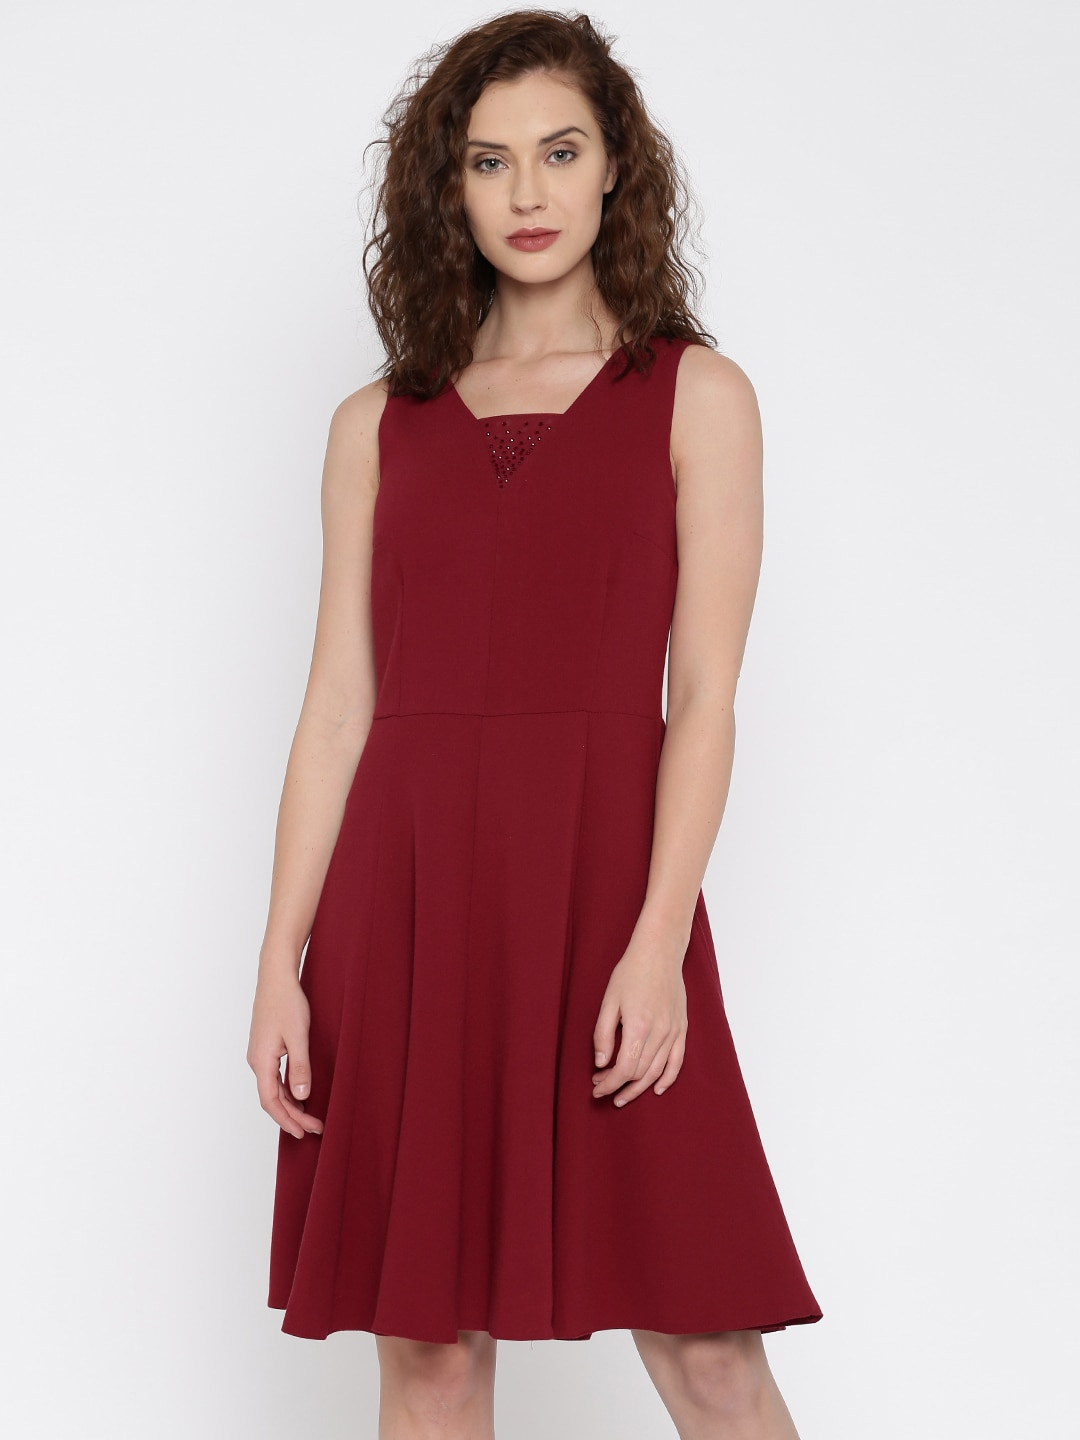 8fa69a3a815 Skater Dress - Buy Latest Skater Dresses Online in India